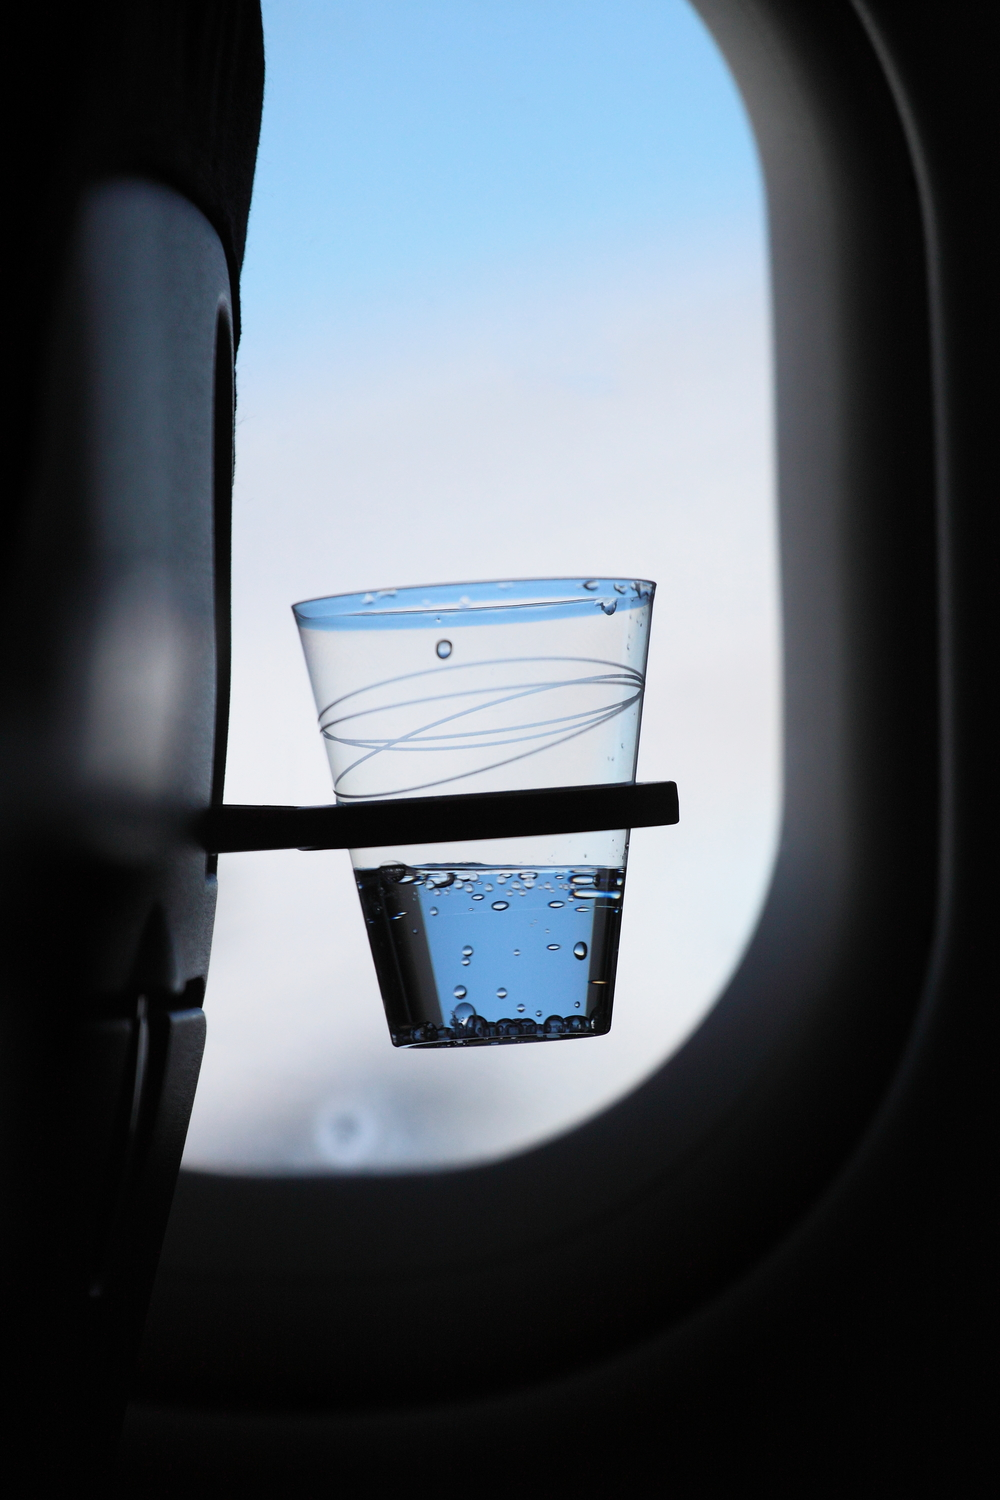 Water on the plane (2012)